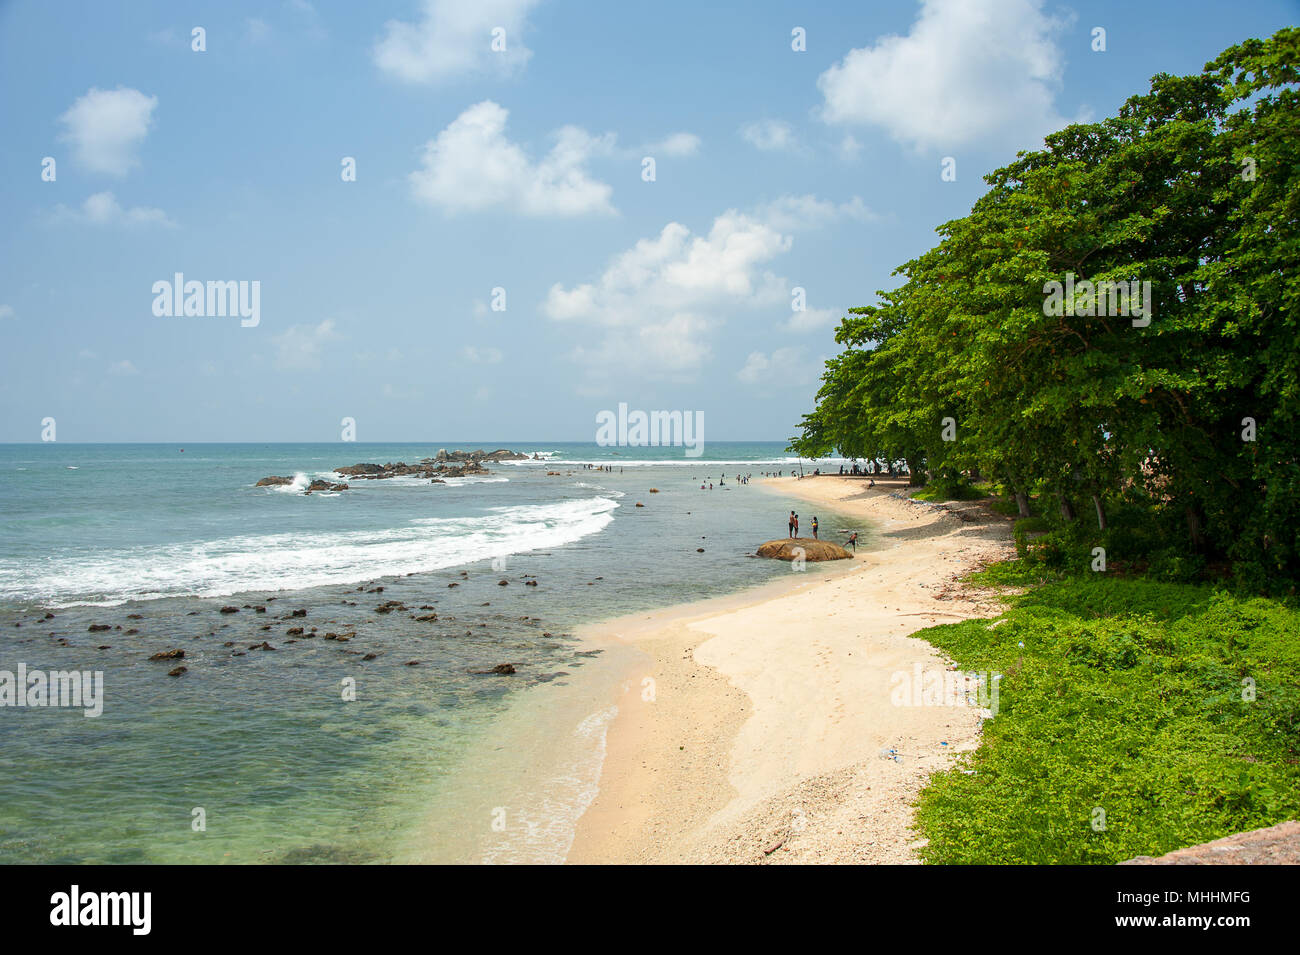 Galle Beach in the old town of Galle. Breathtaking scene, gentle surf breaking over rocks along the reef, blue sky and a green treeline and foreground - Stock Image